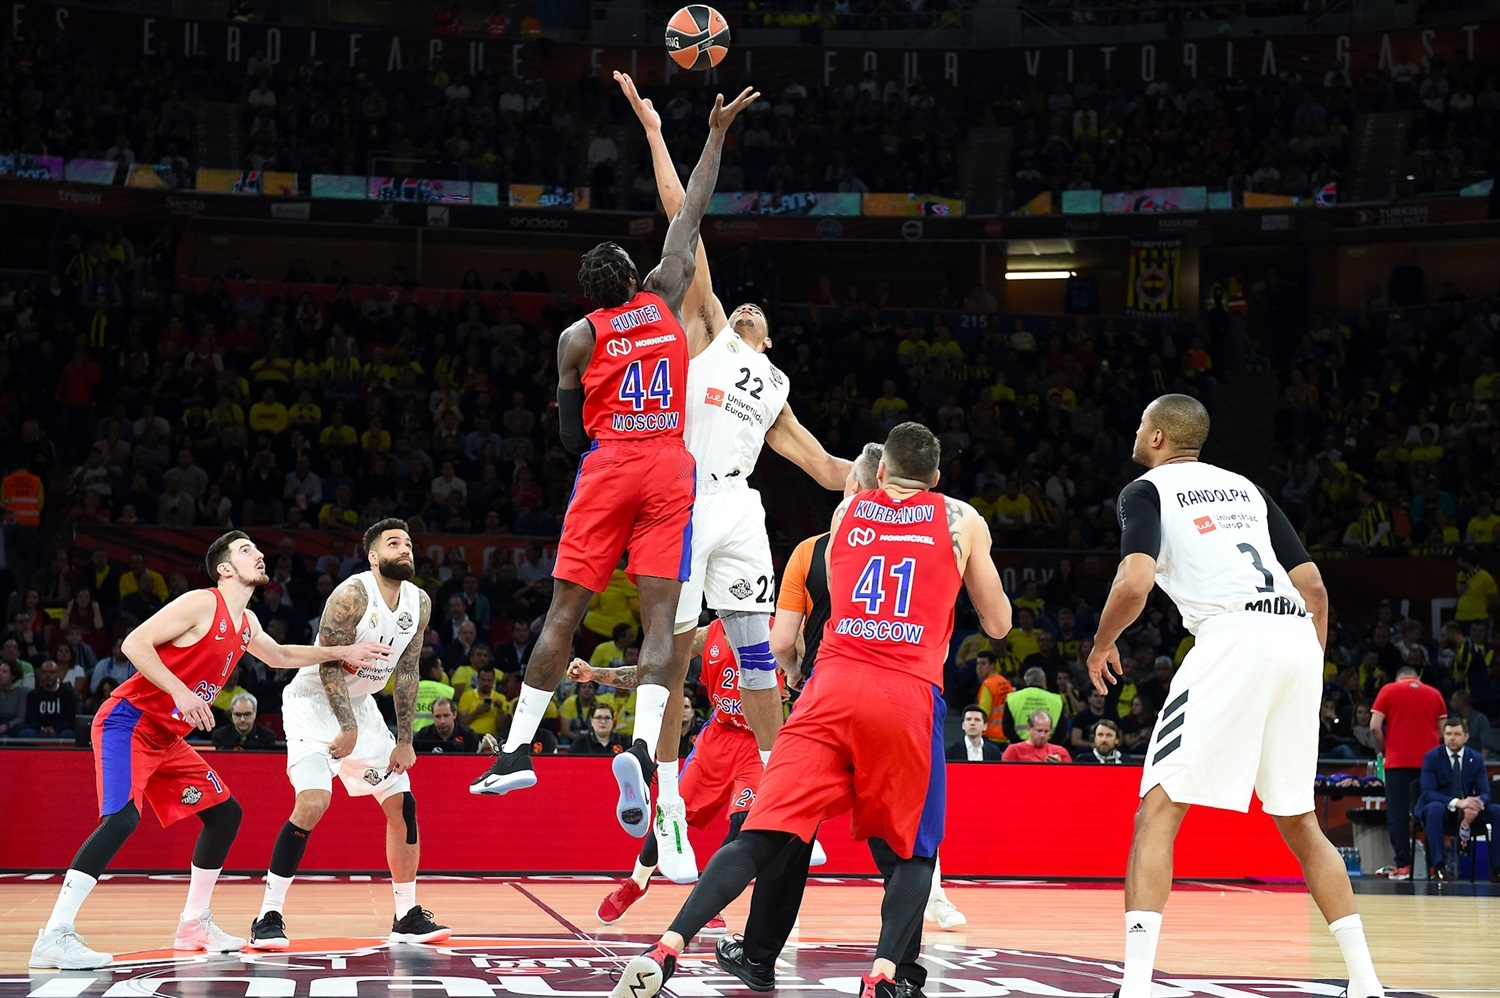 Tip-Off CSKA Moscow vs. Real Madrid - Final Four Vitoria-Gasteiz 2019 - EB18